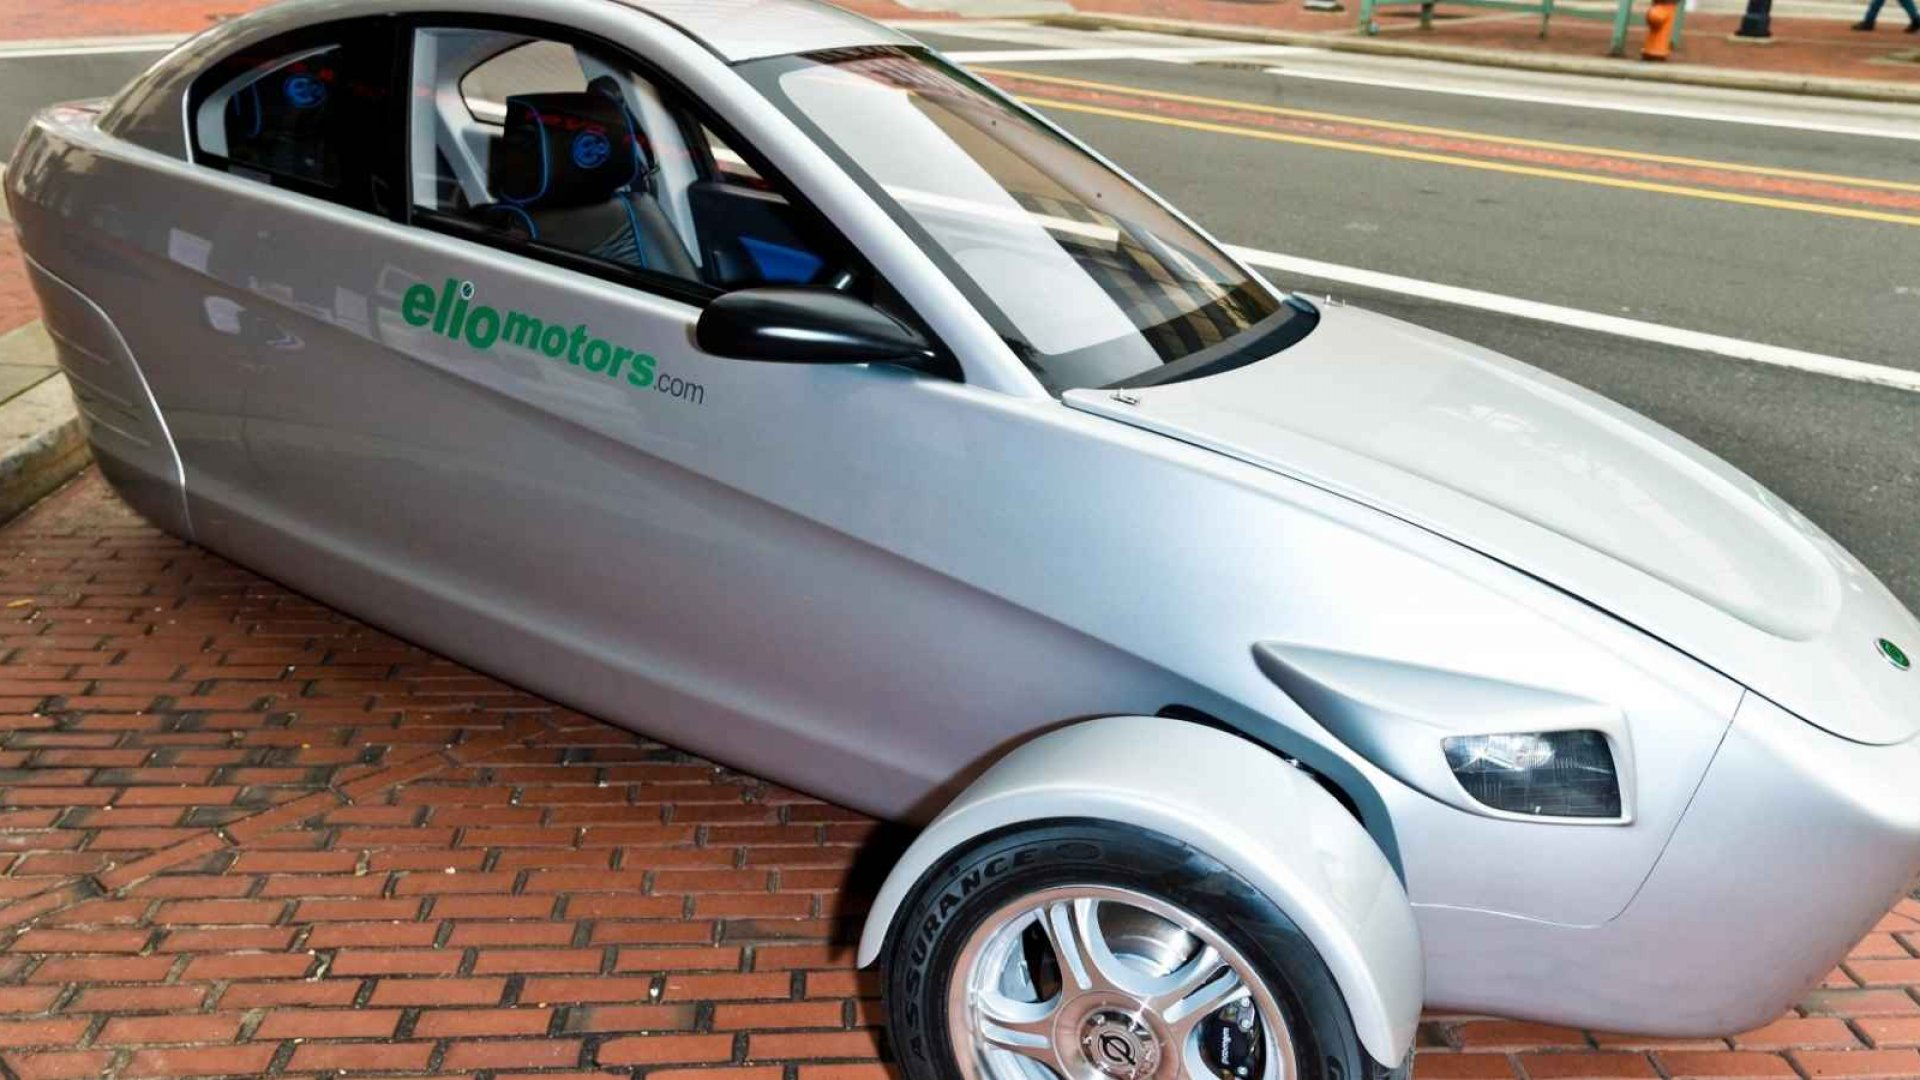 Elio Motors, a three-wheeled car startup, hopes to go into production December 2016.